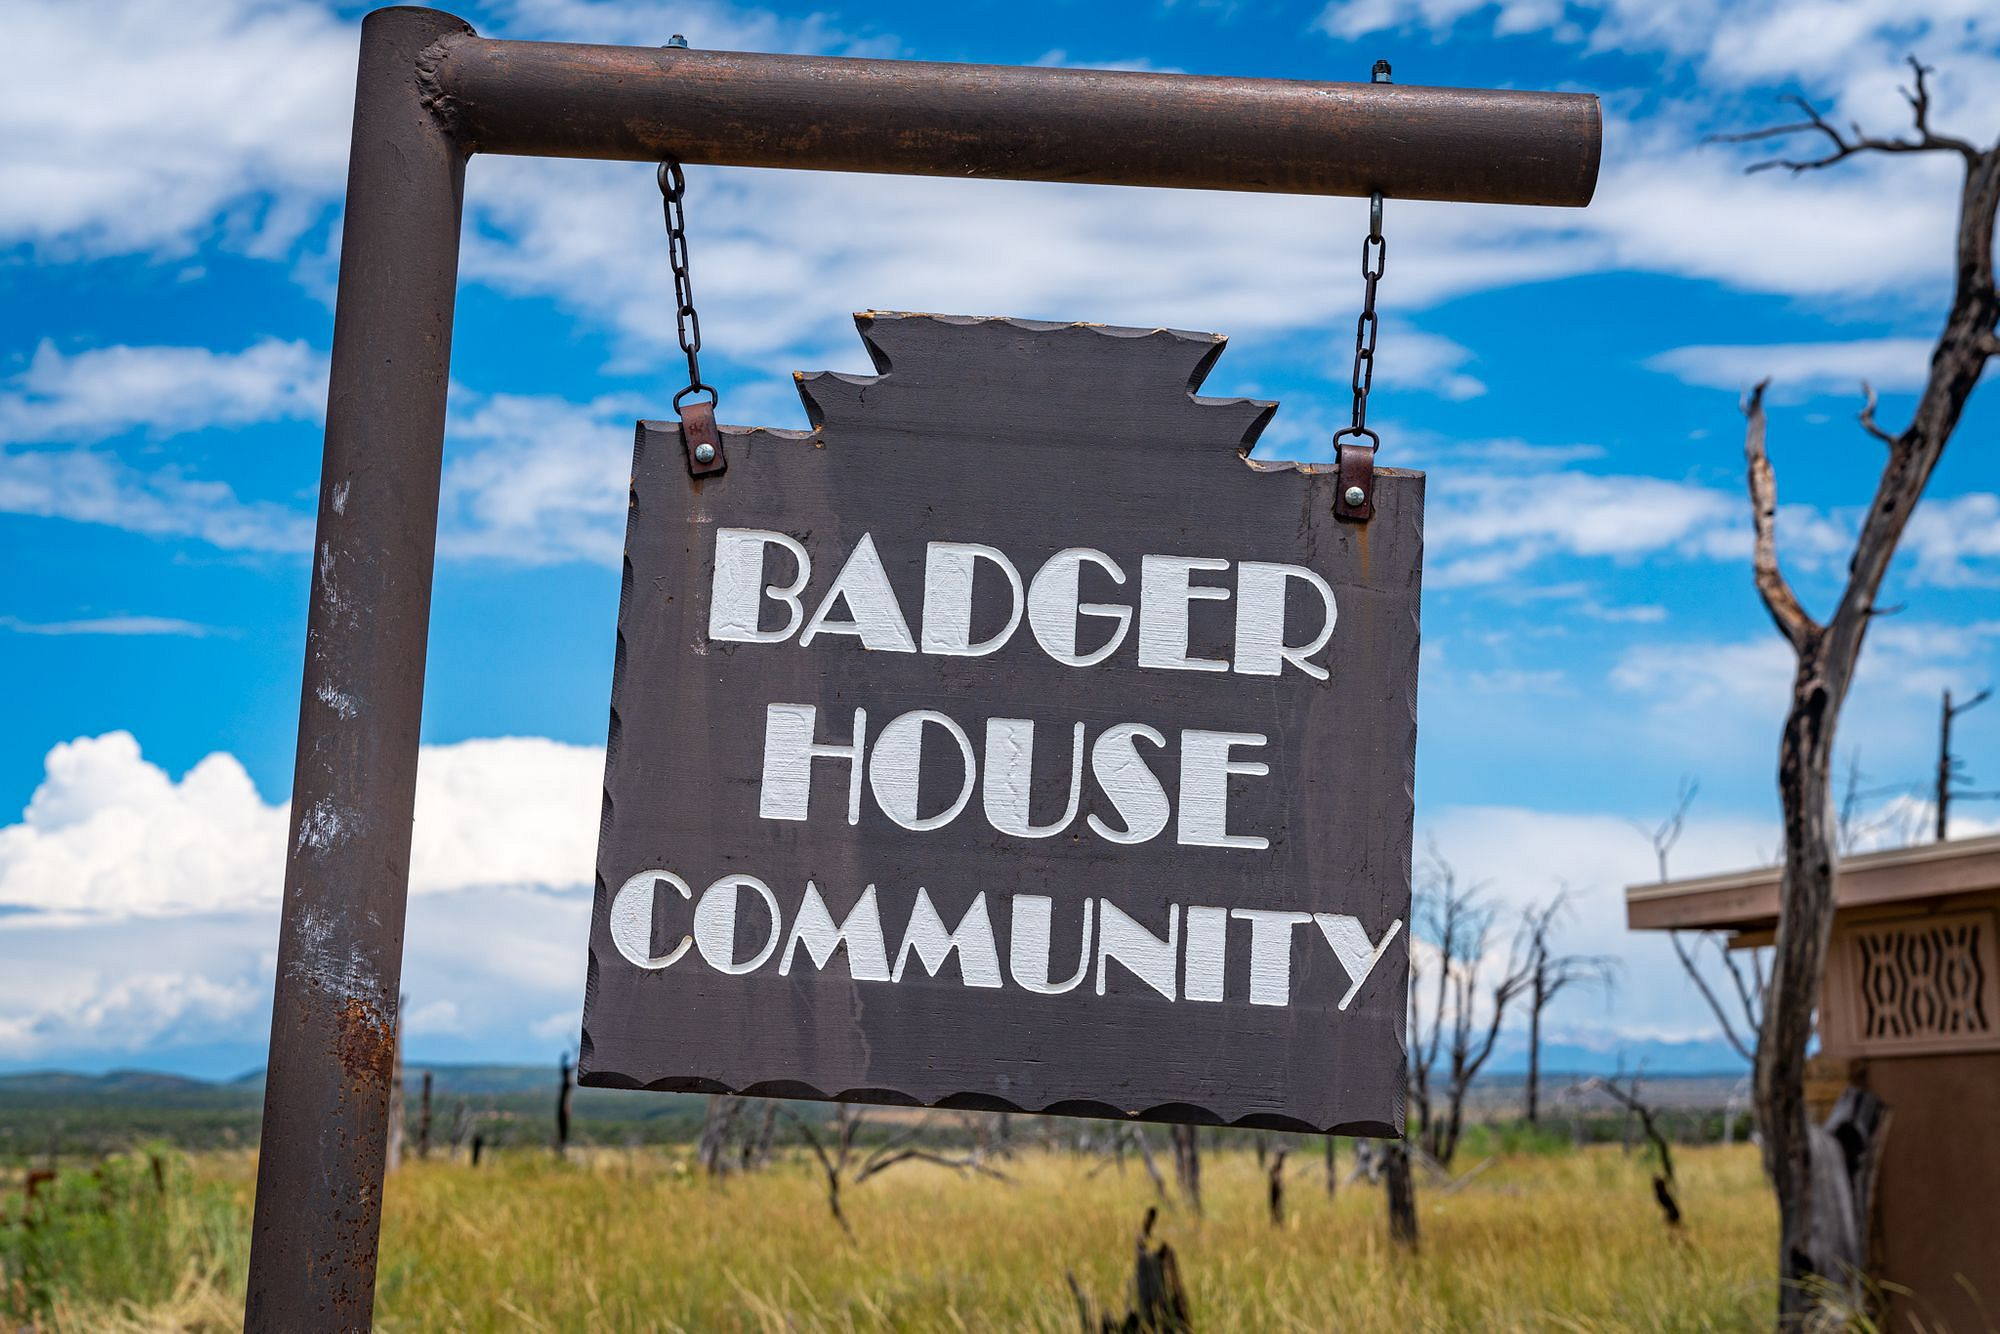 Badger House Community